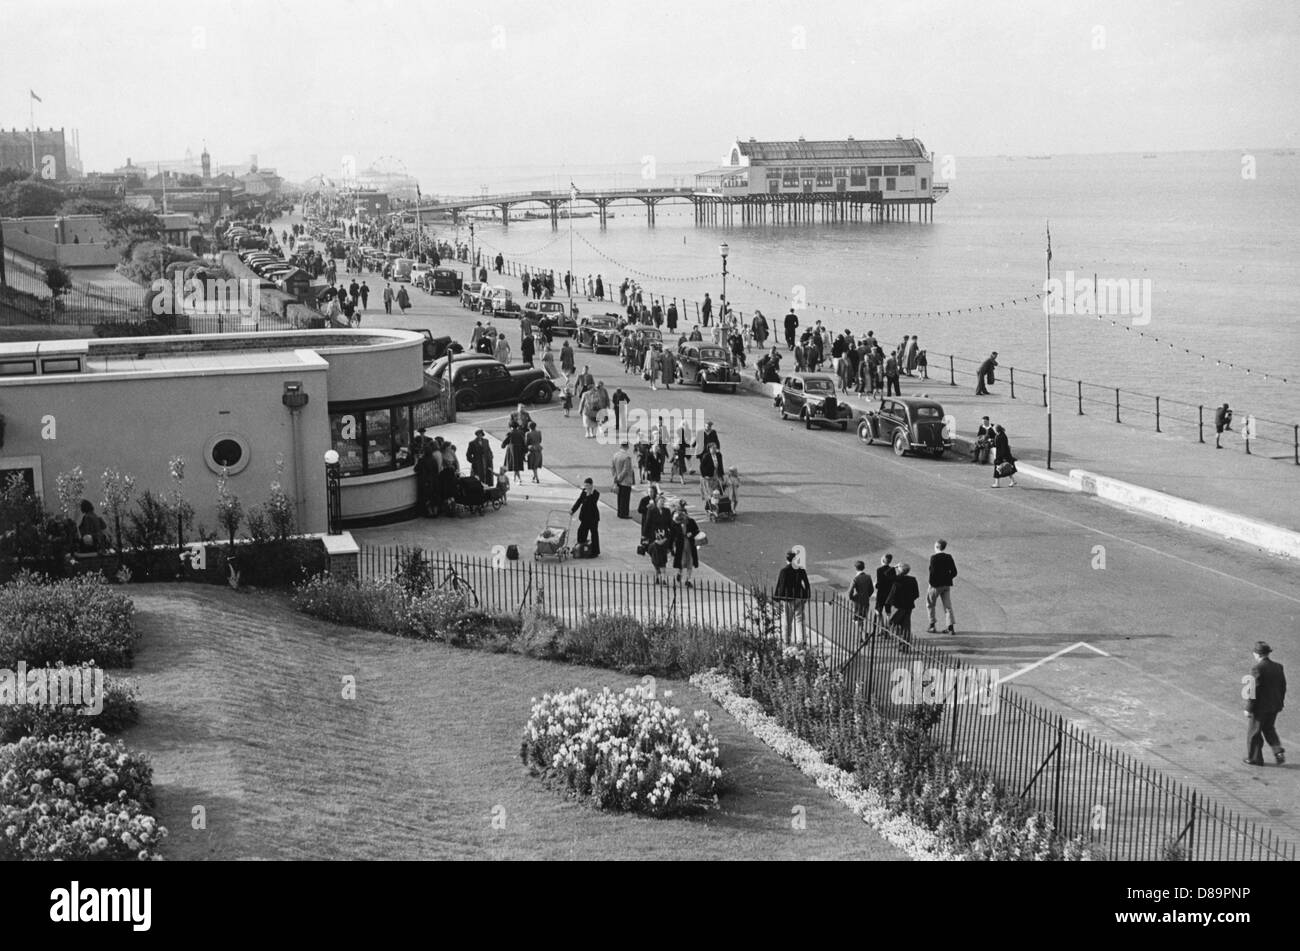 Parade At Cleethorpes - Stock Image